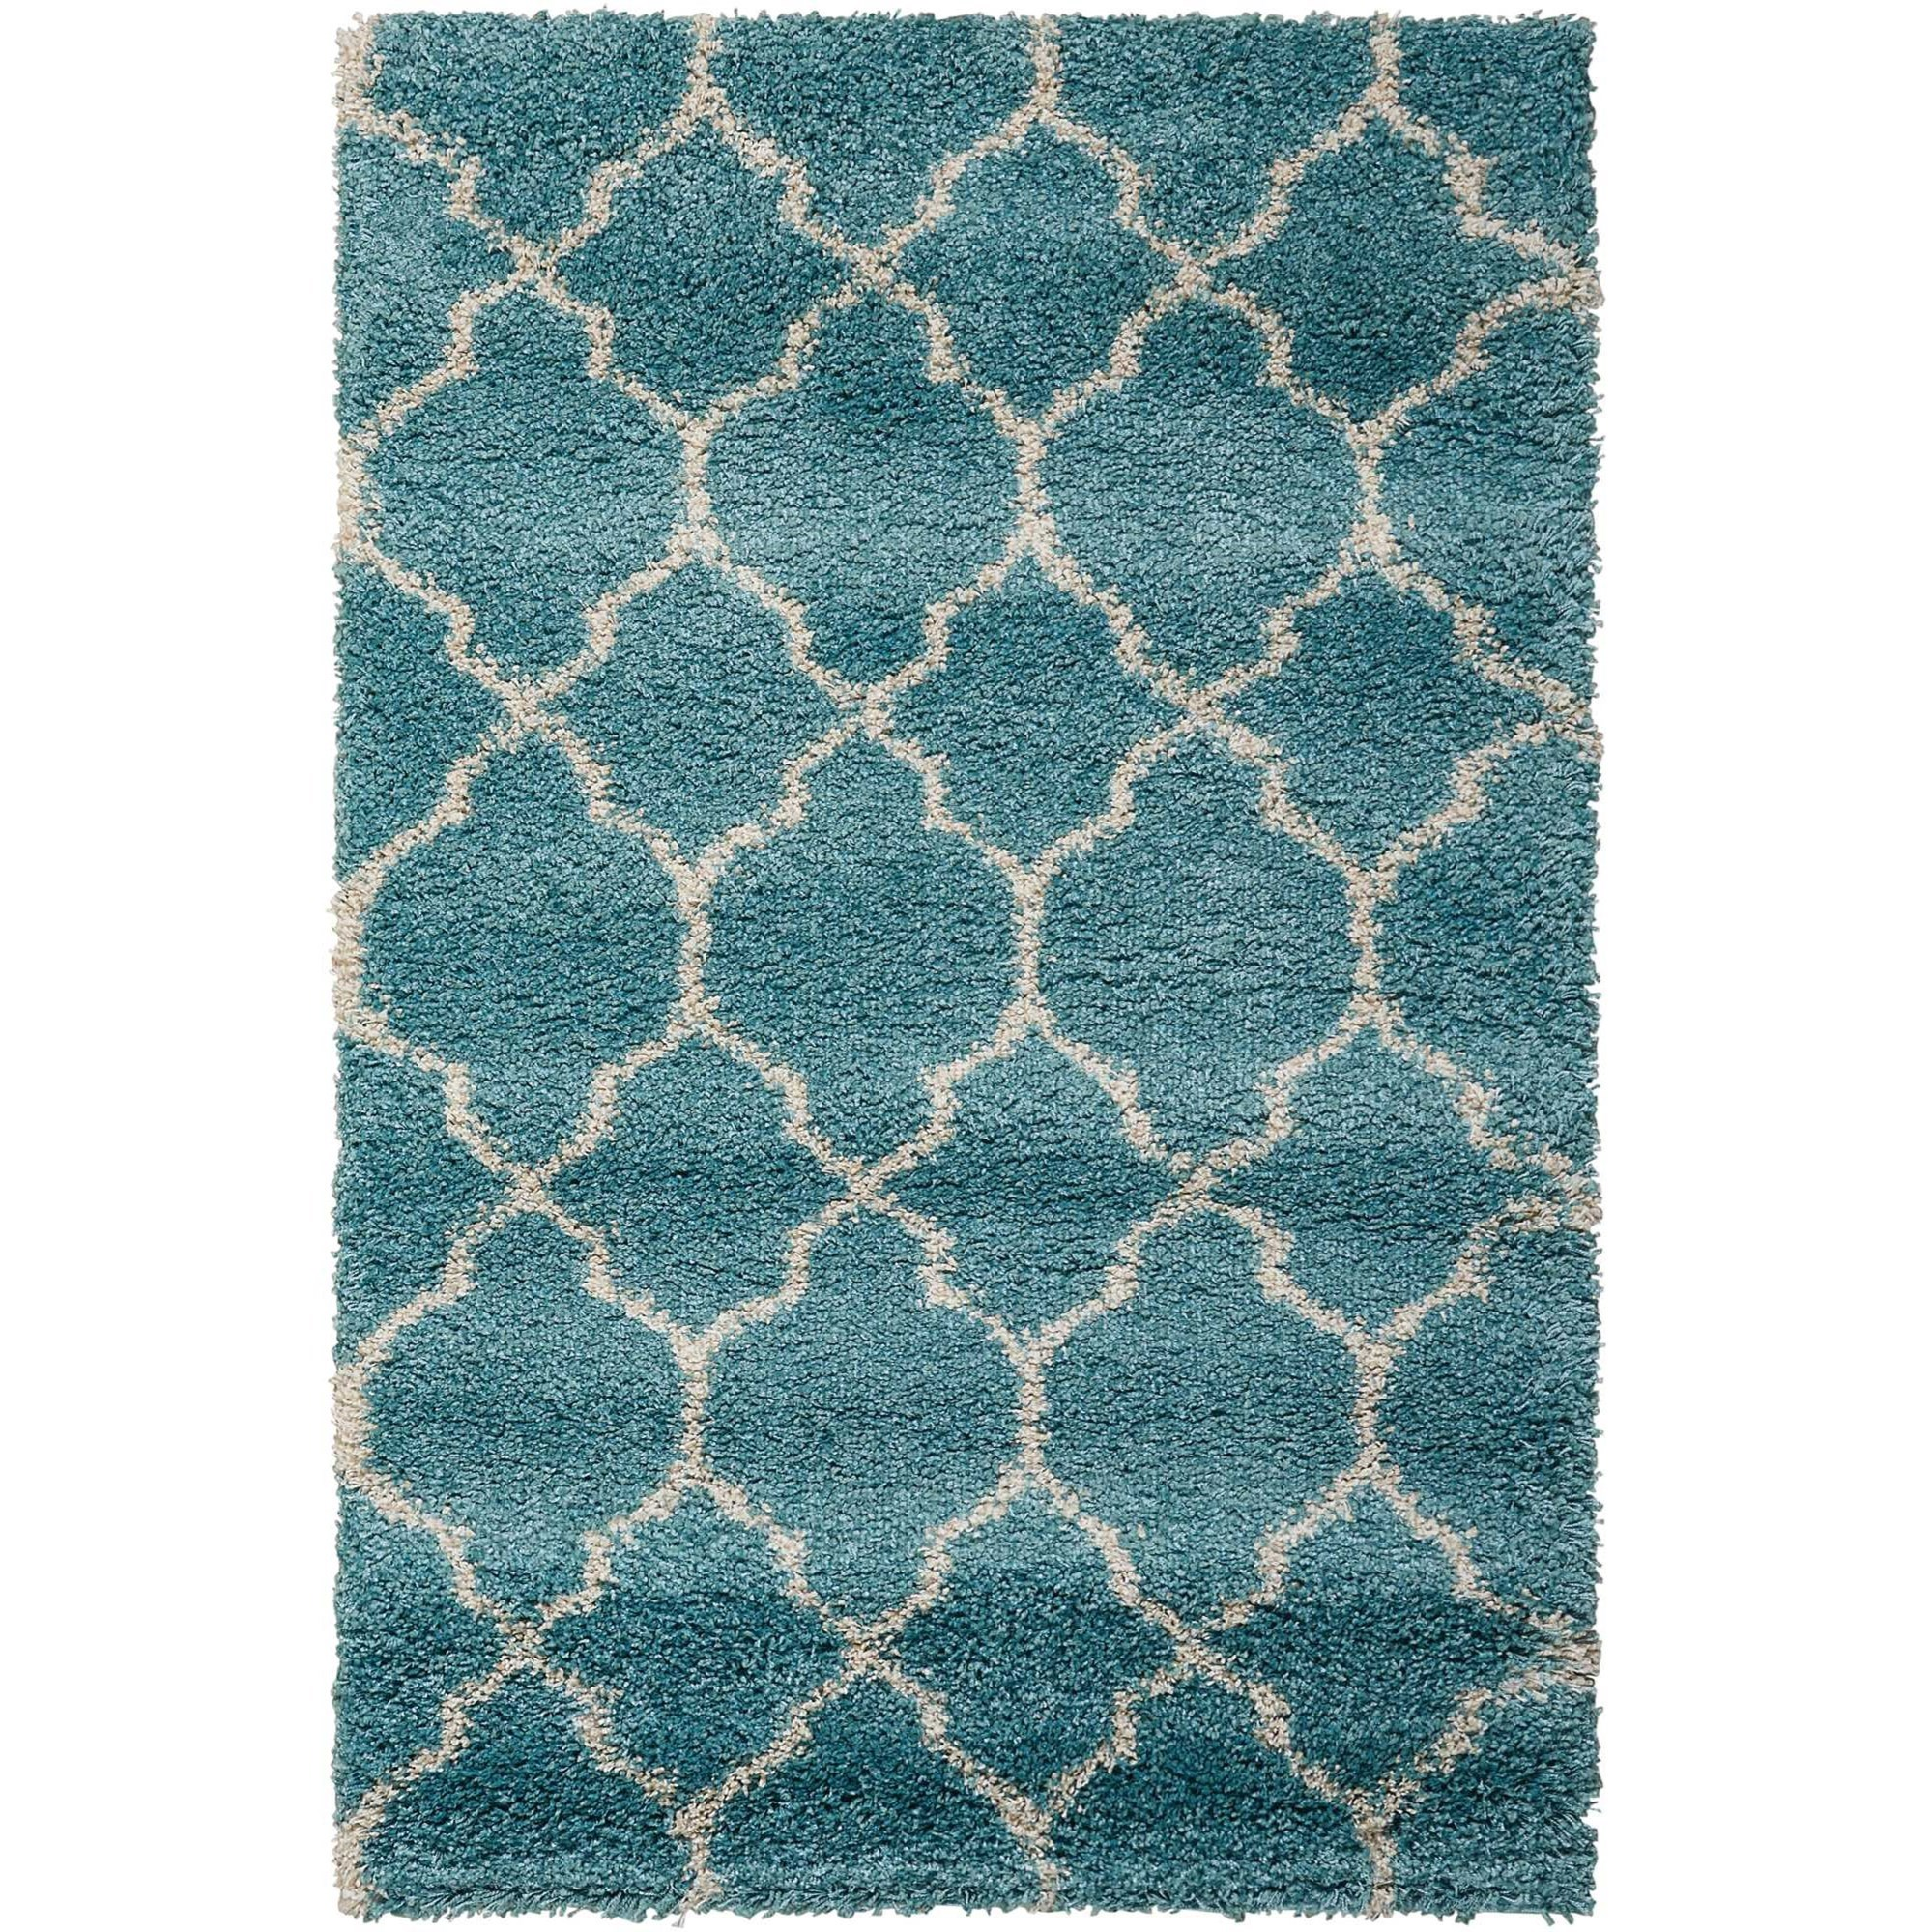 "Amore 3'2"" x 5' Aqua Rectangle Rug by Nourison at Home Collections Furniture"